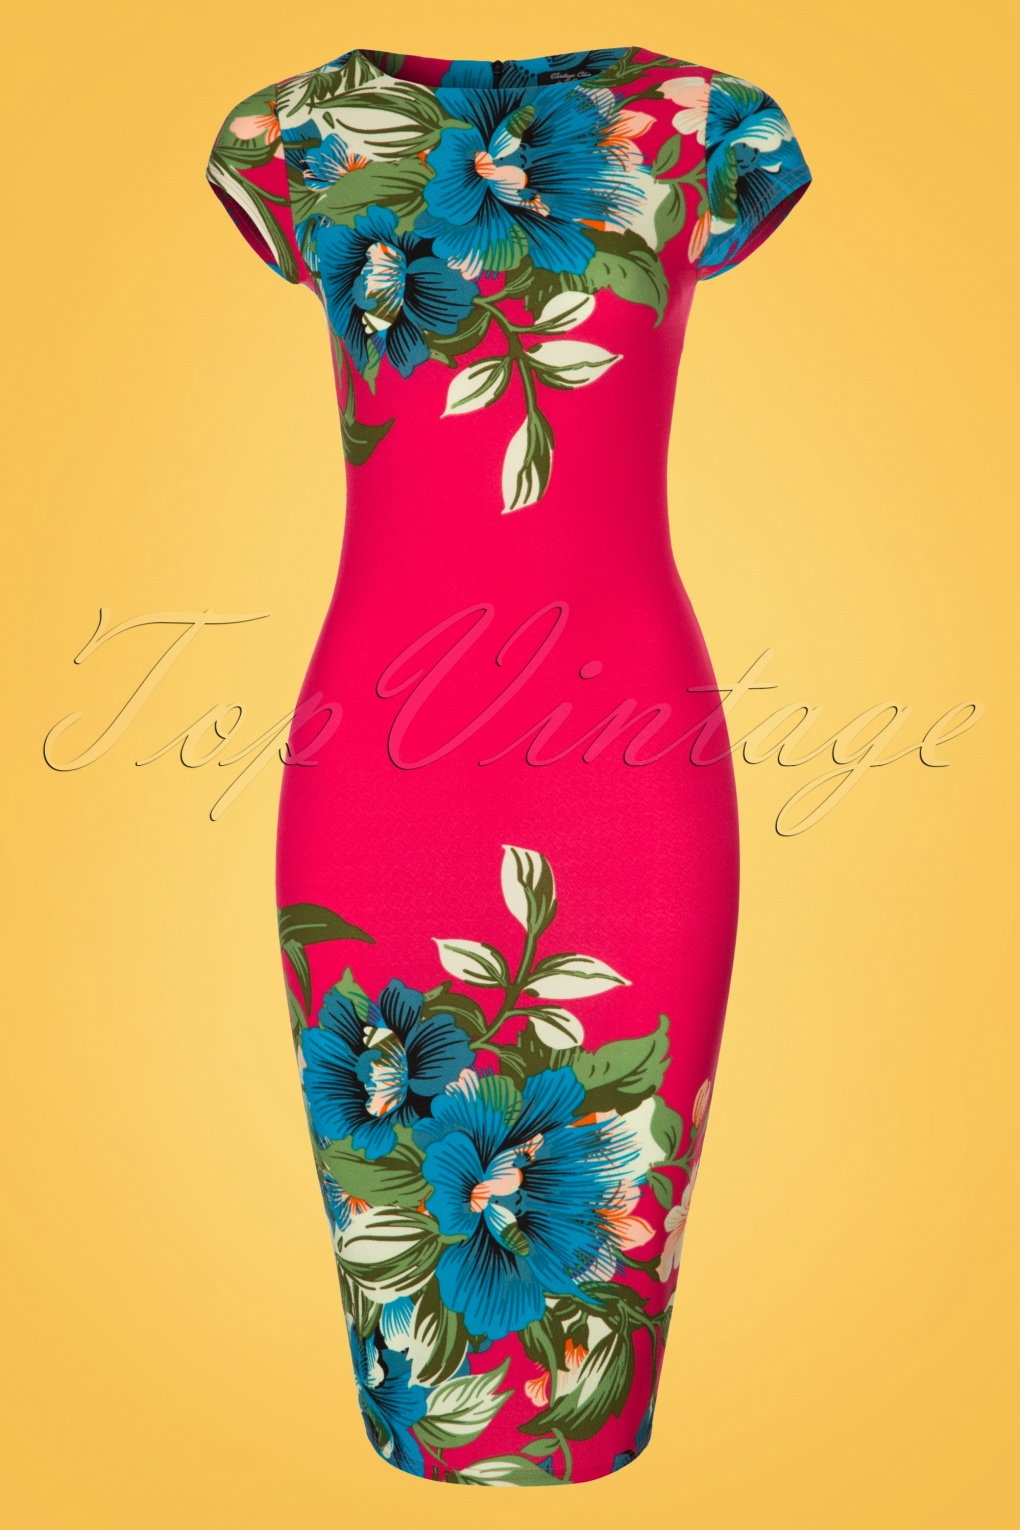 Wiggle Dresses | Pencil Dresses 60s Aloha Tropical Garden Short Sleeves Pencil Dress in Hot Pink £25.57 AT vintagedancer.com